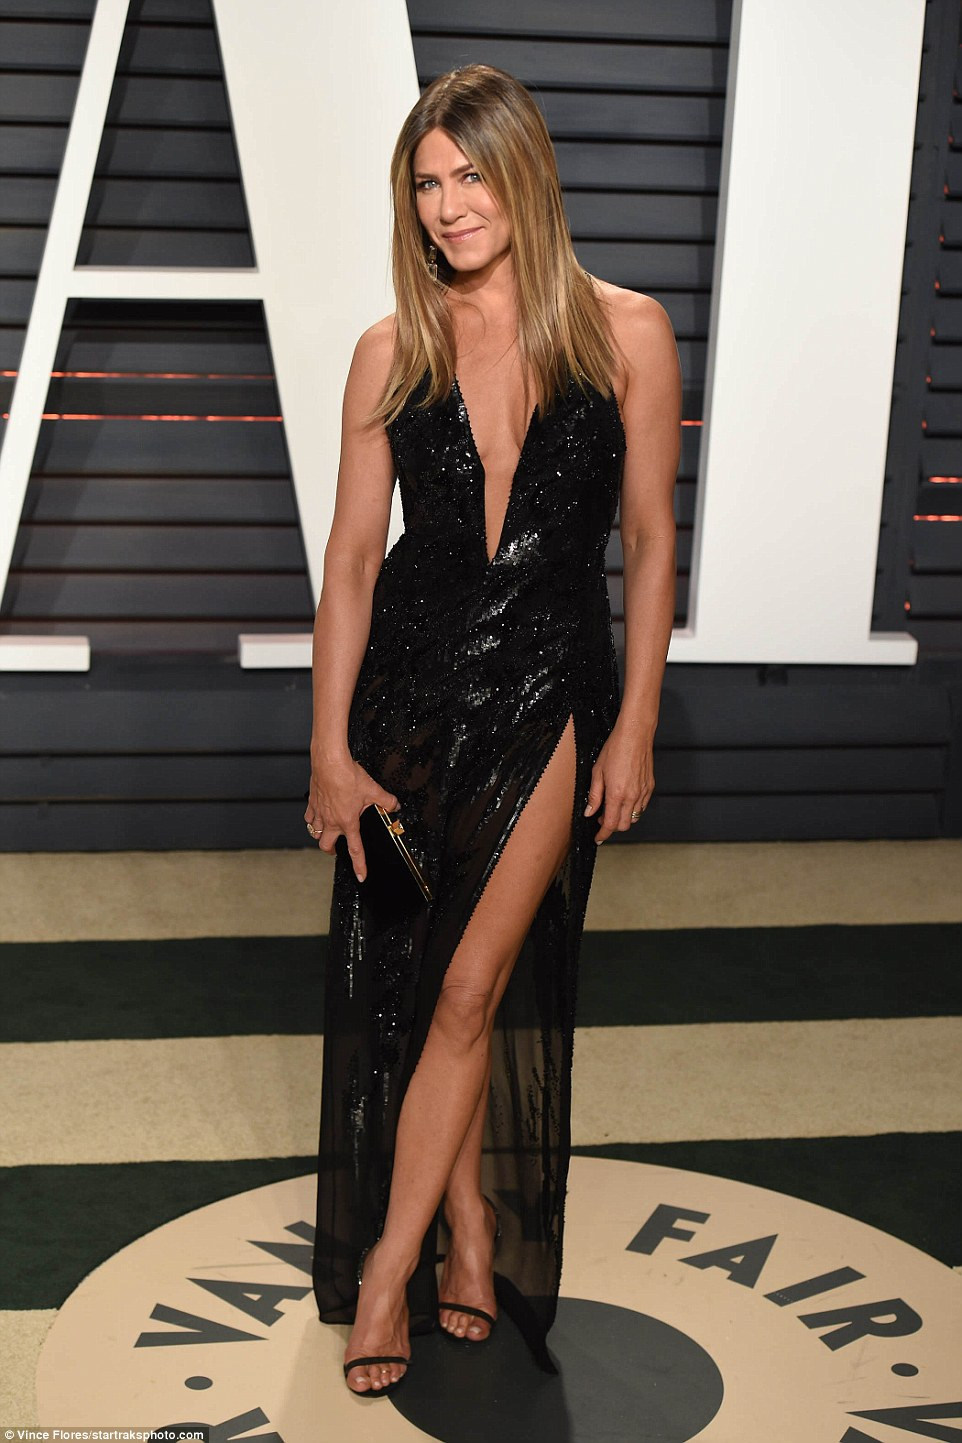 Jennifer Aniston sizzles in Atelier Versace at the 2017